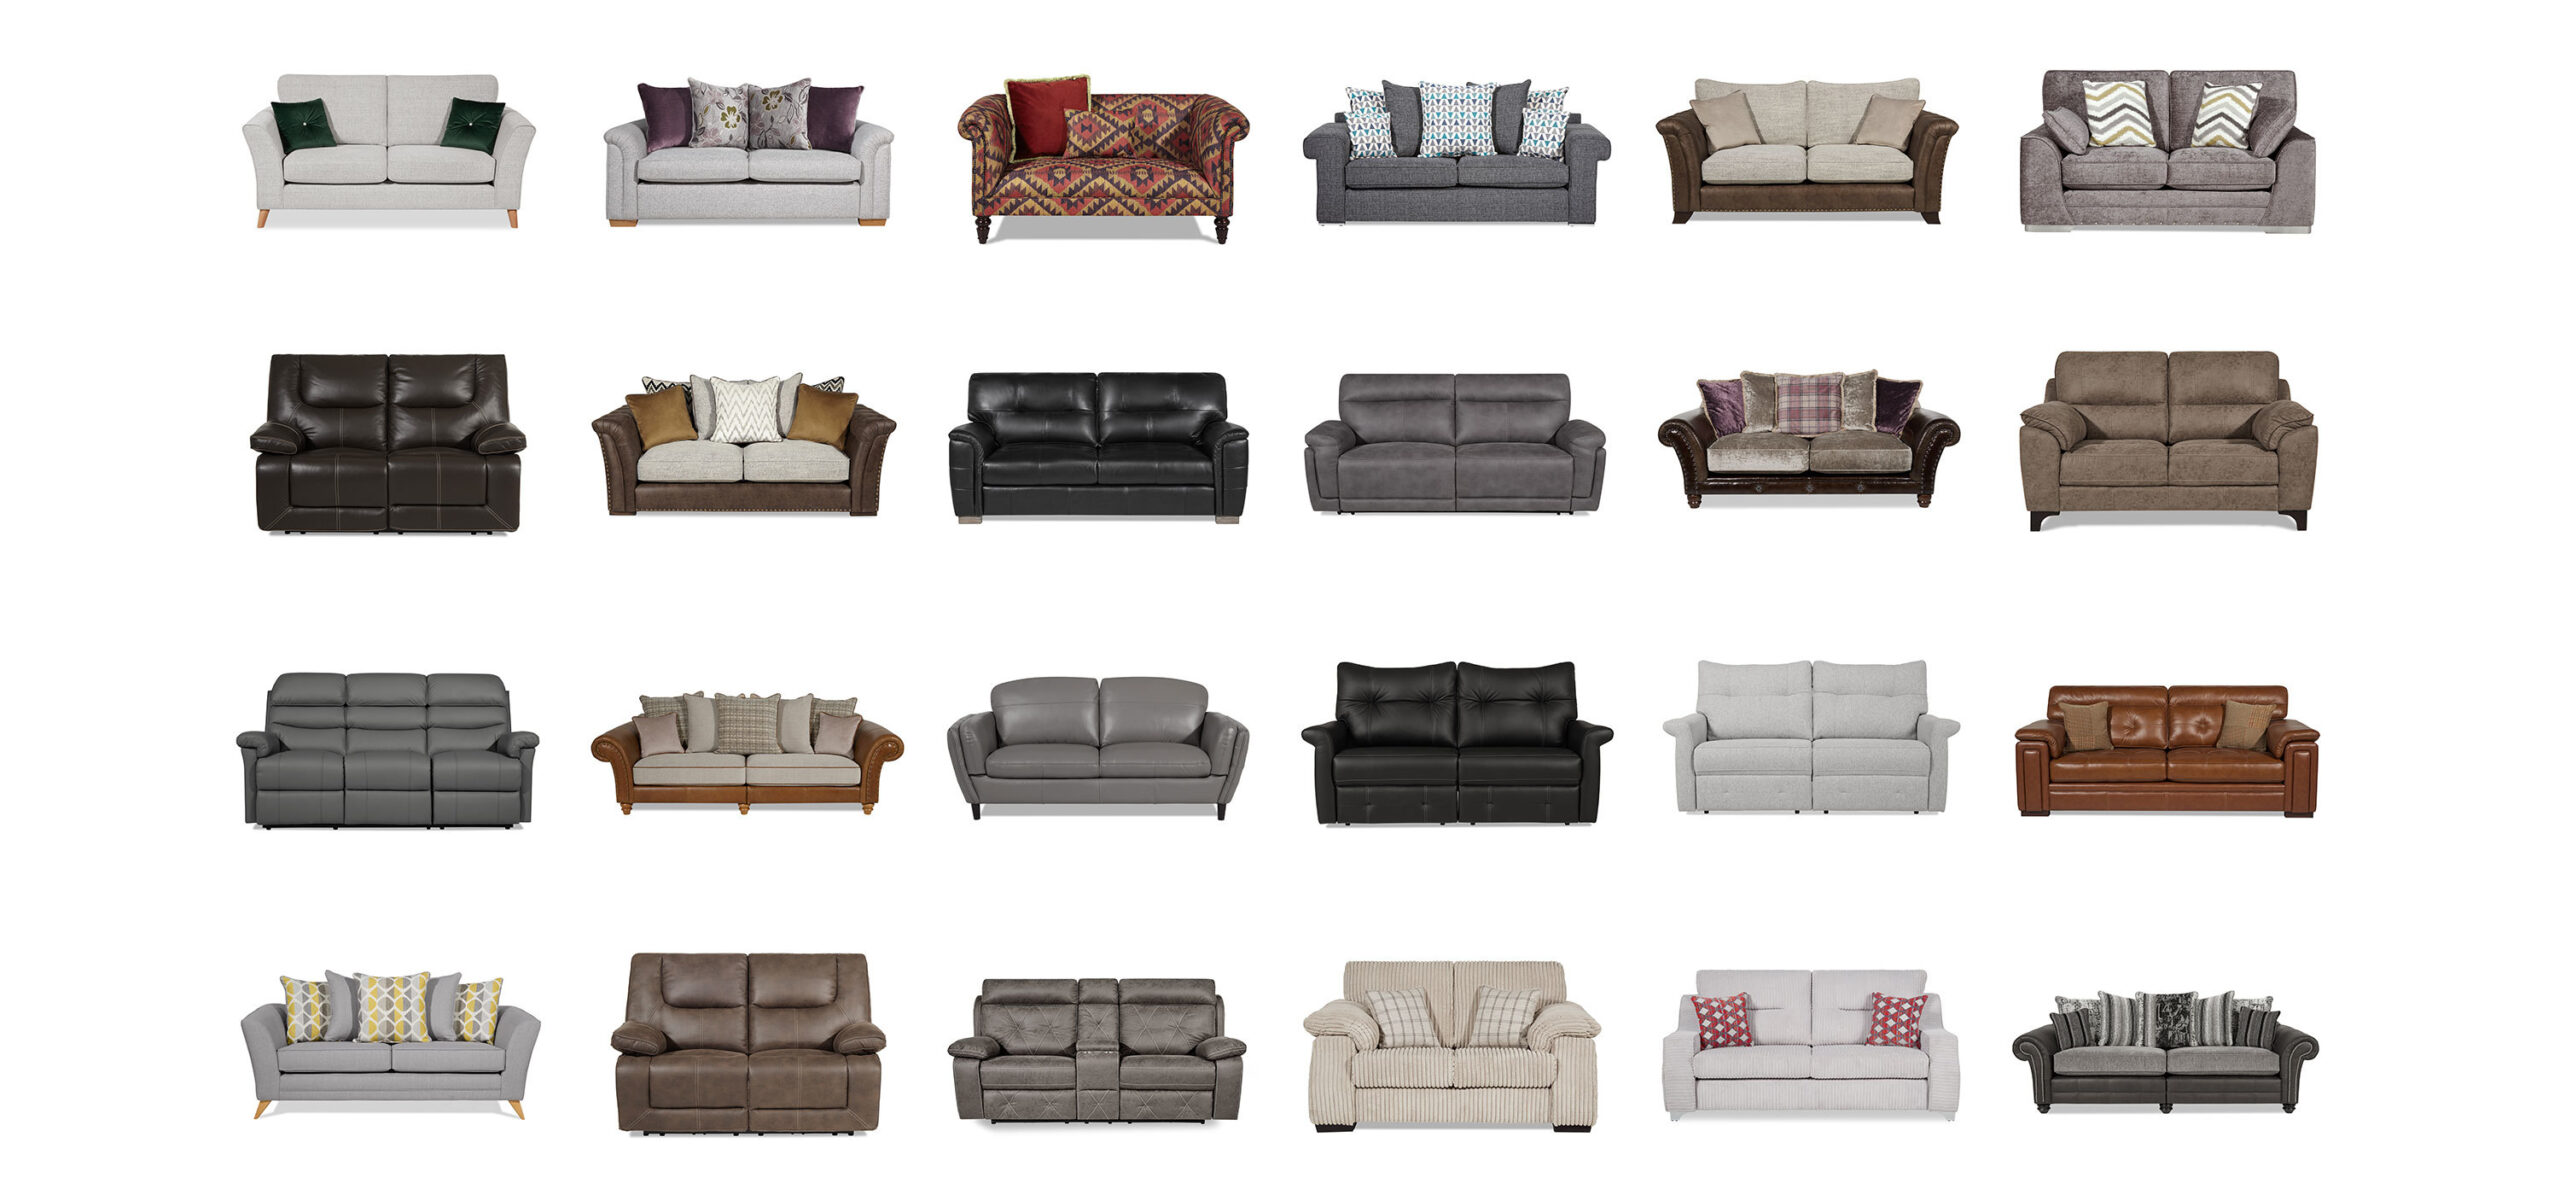 Tiled Products 25 Sofas 2